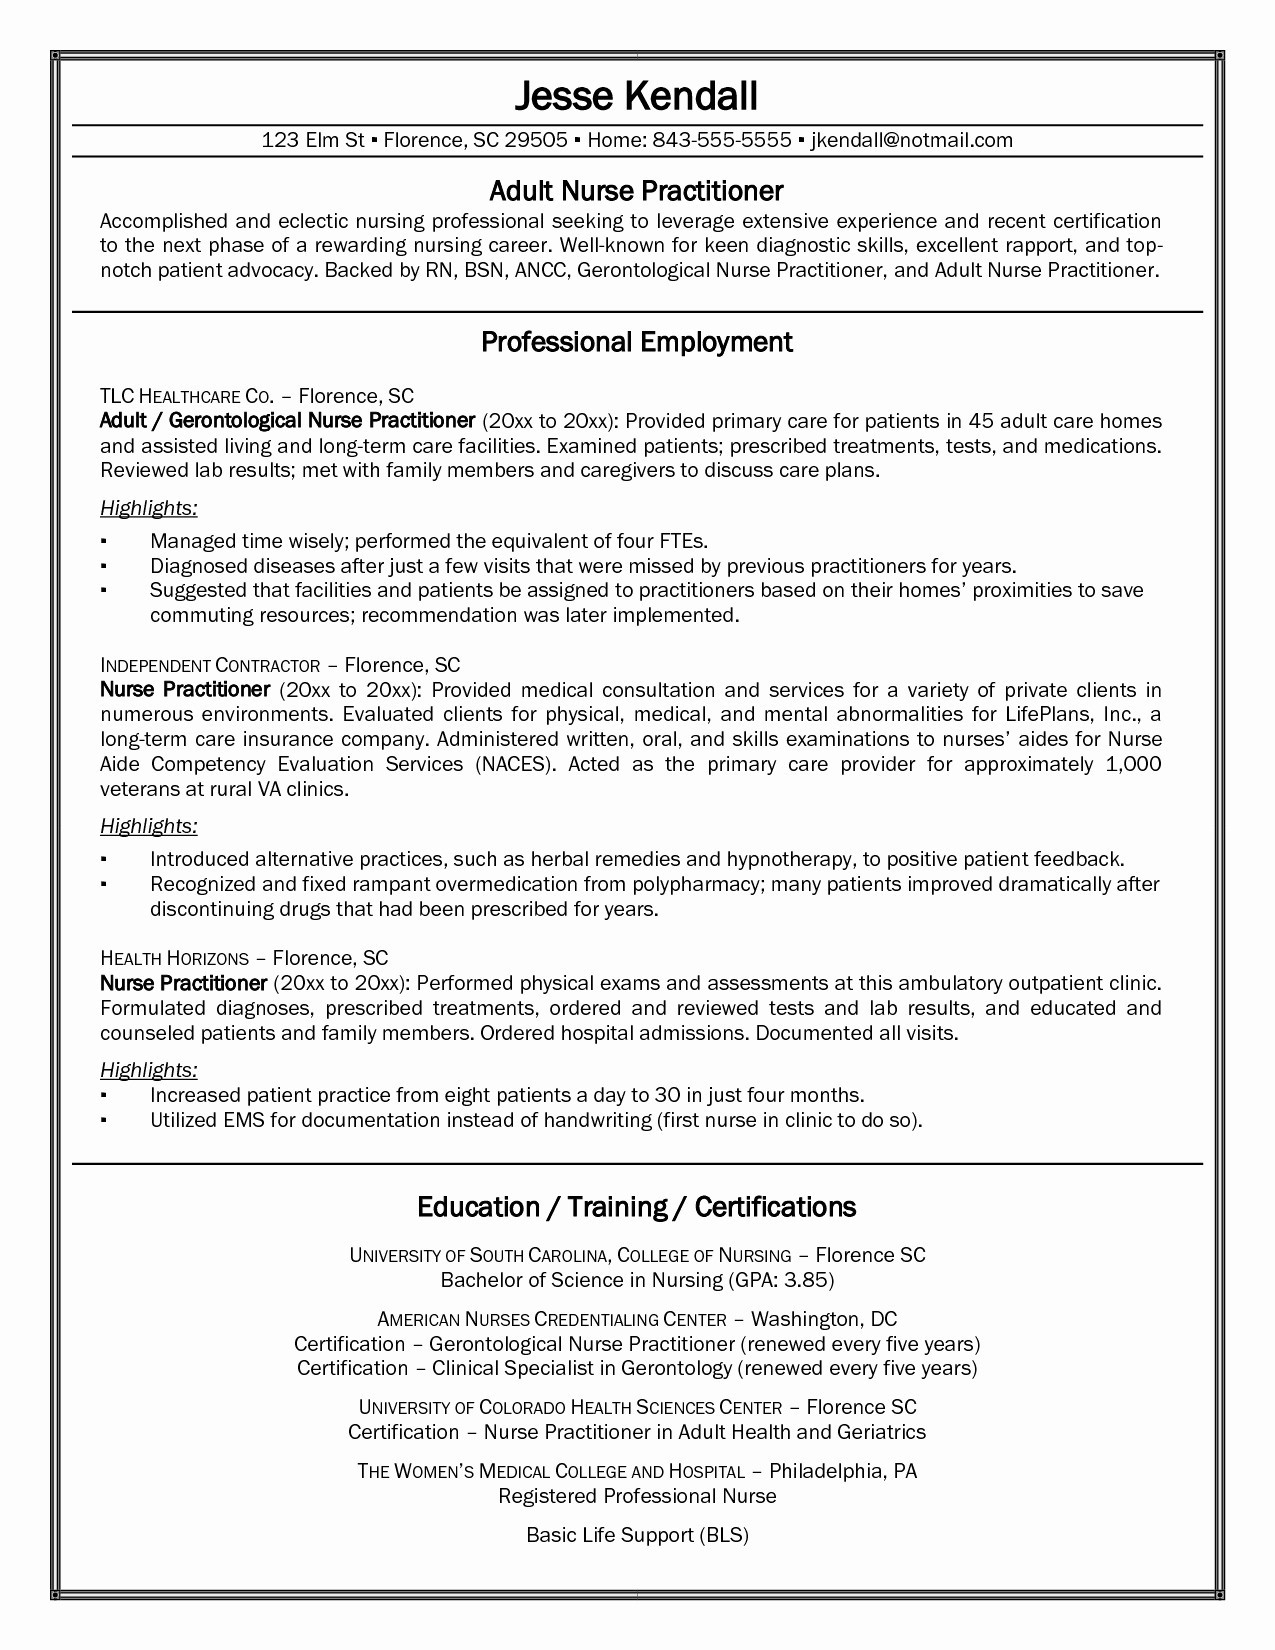 Home Health Nurse Resume - Sample Nursing Resume Unique Experienced Rn Resume Fresh Nurse